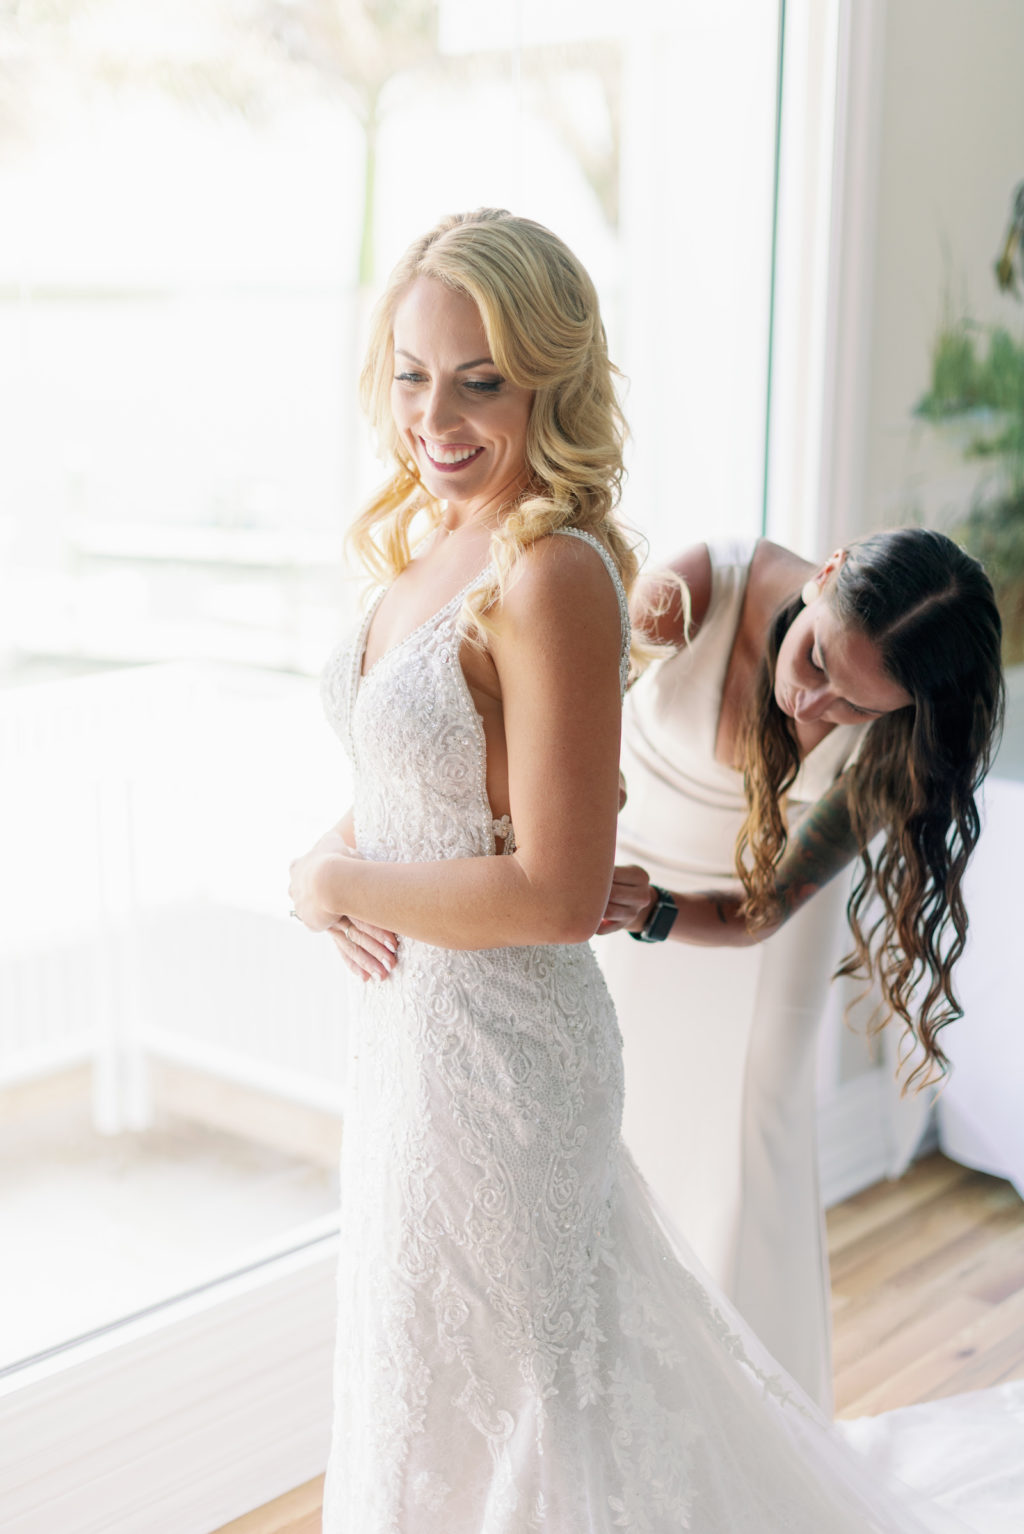 Tampa Bride Getting Wedding Ready in Lace Spaghetti Strap Wedding Dress   Wedding Hair and Makeup Michele Renee the Studio